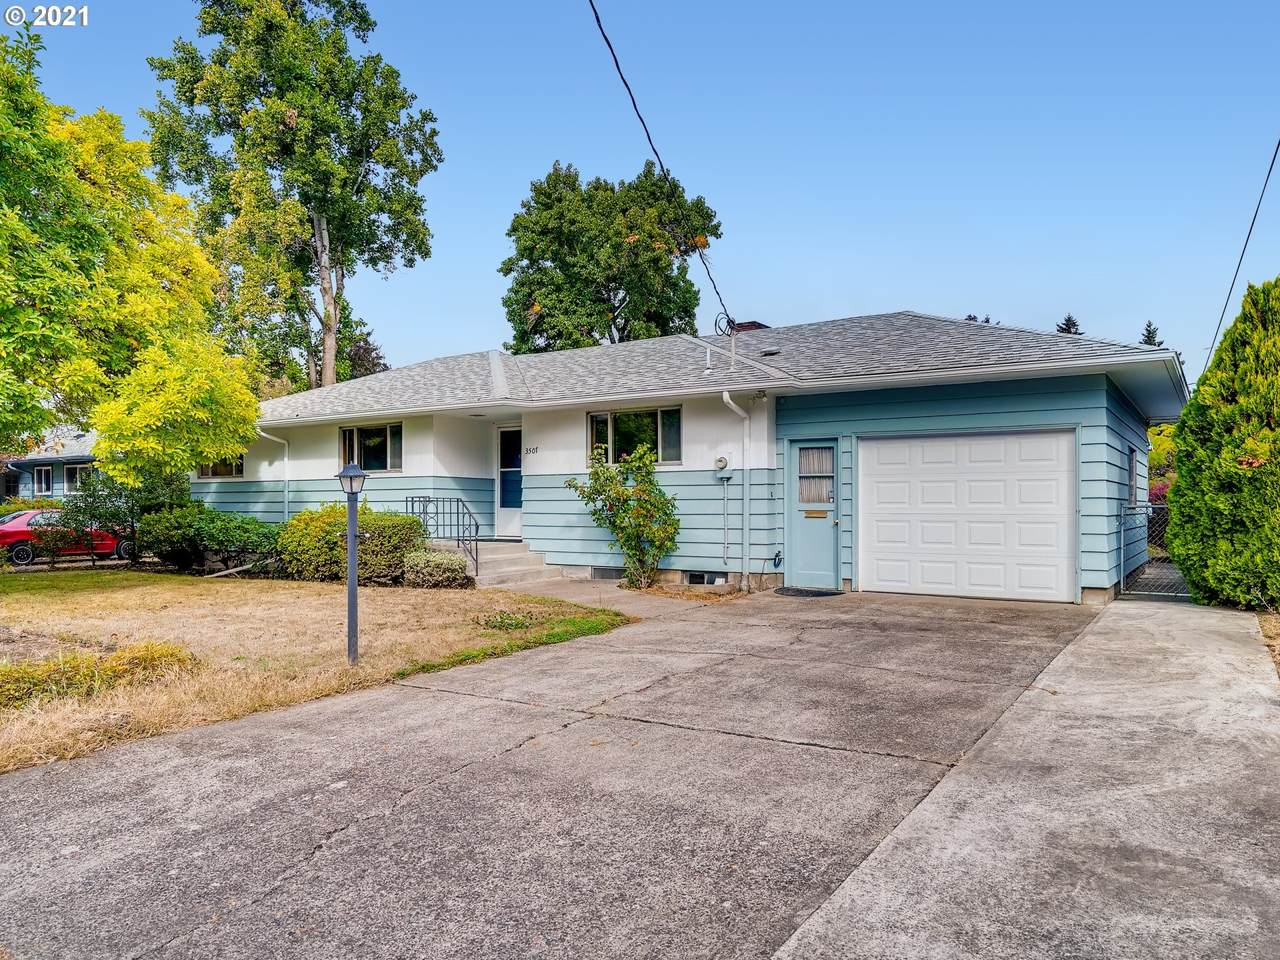 3507 Roswell St - Photo 1